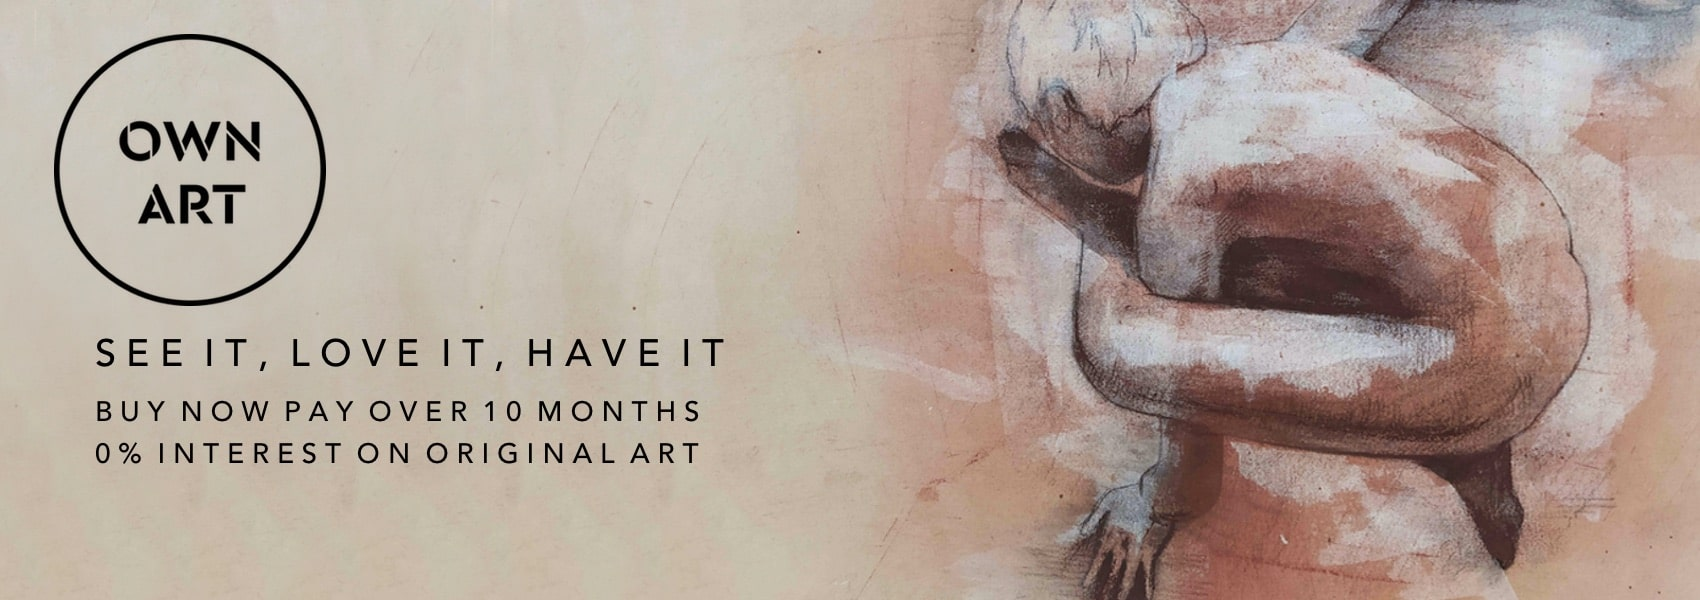 See It, Love It, Have It.  Own Art.  0% Finance on Original Art Purchases at Curious Egg.